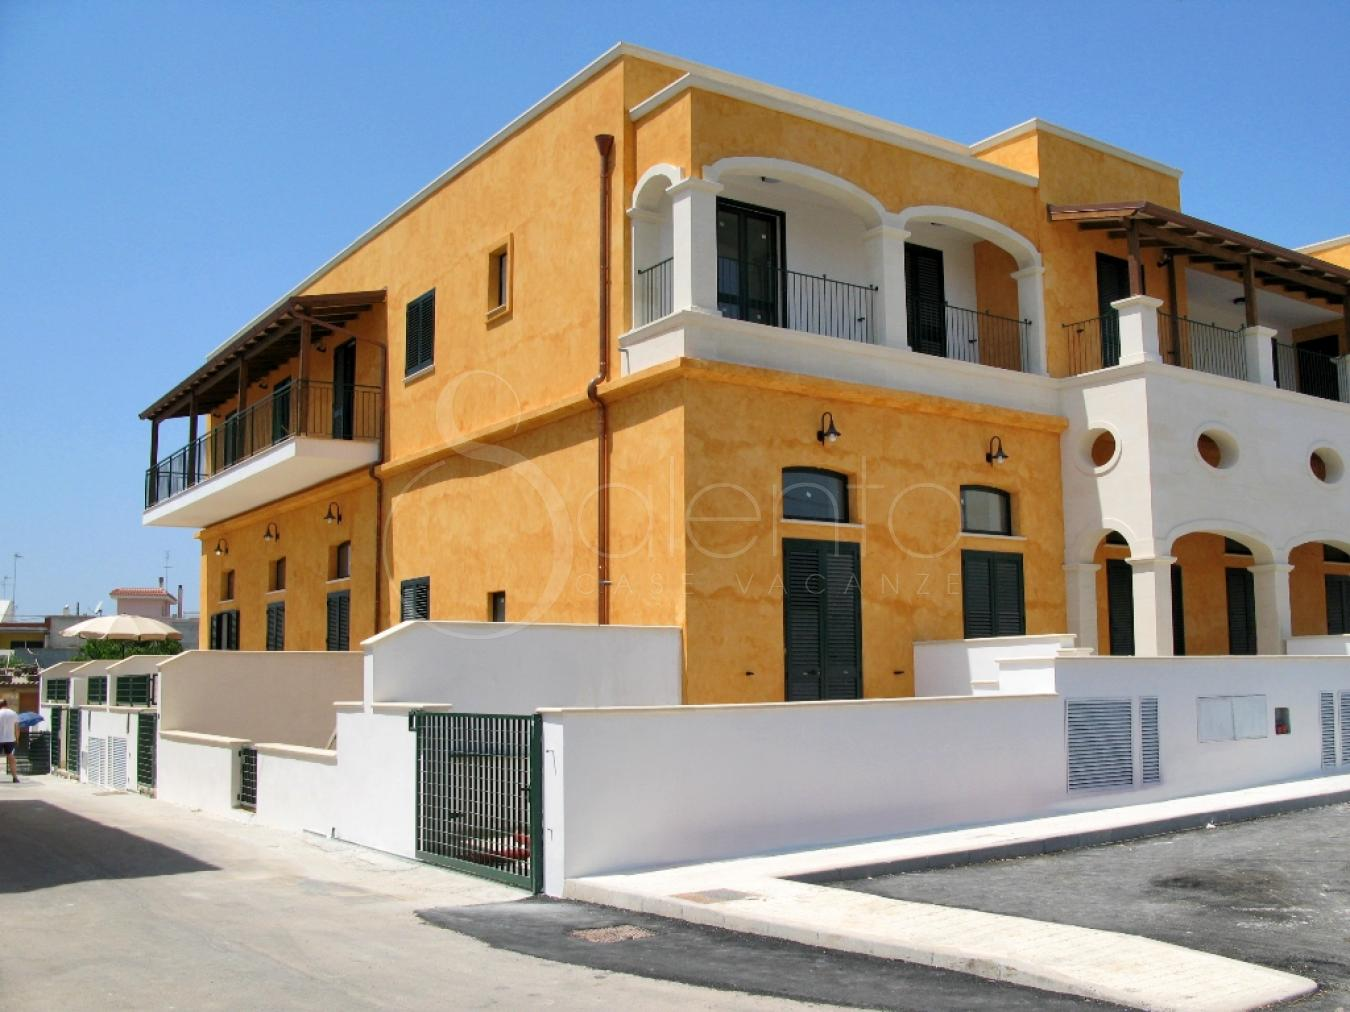 holiday homes - Morciano di Leuca ( Leuca ) - Trilocale Linda